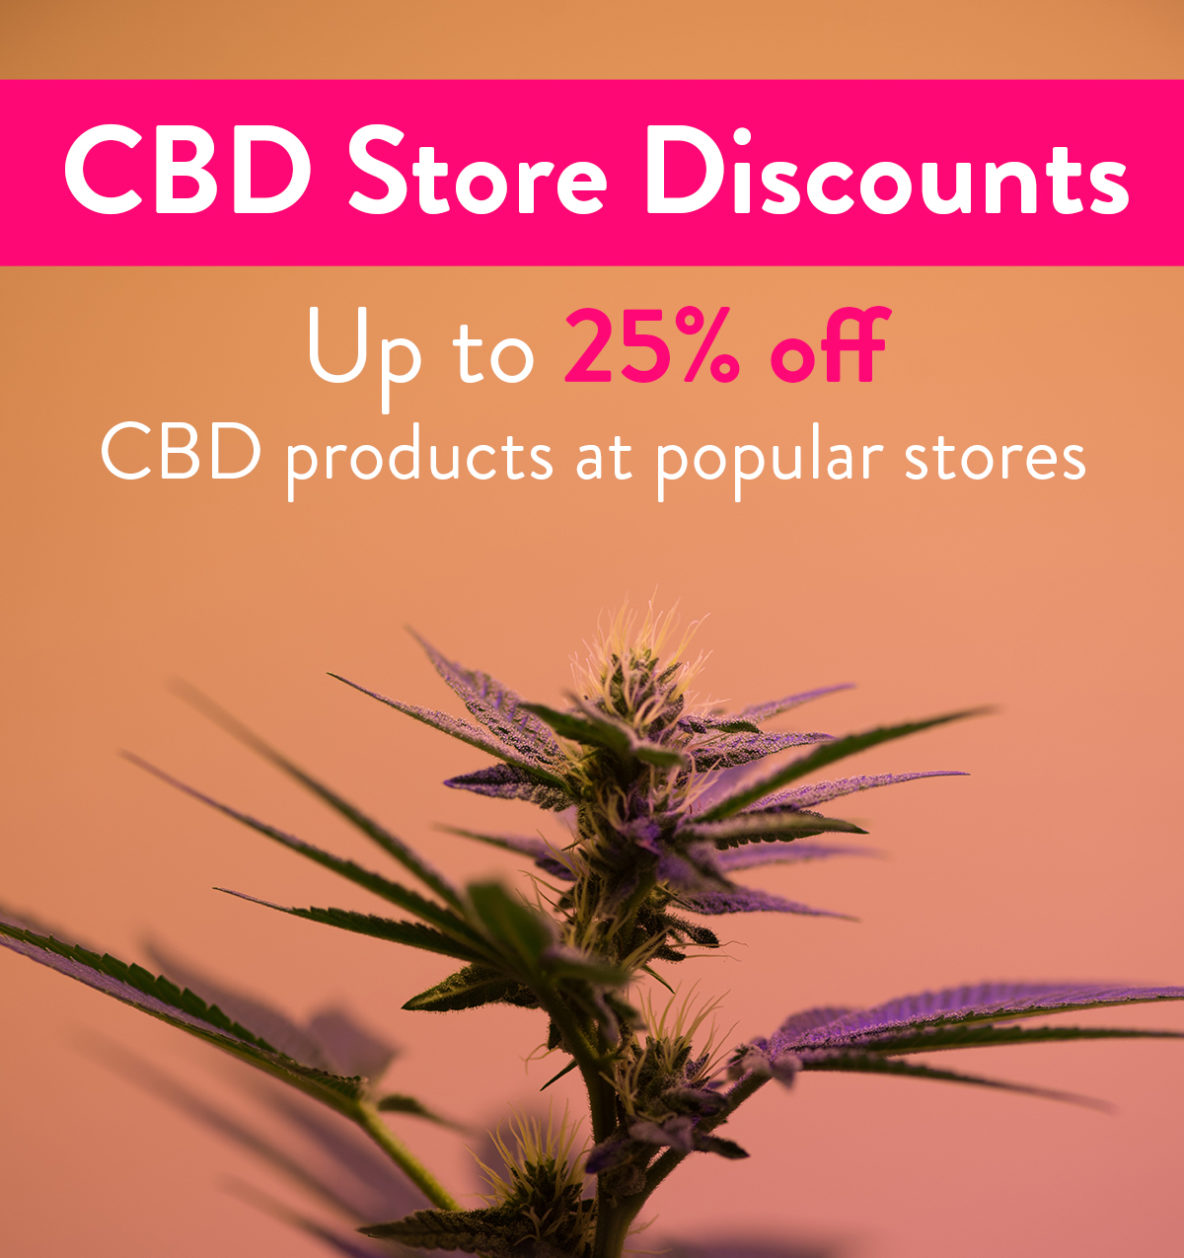 CBD Store Discounts: Get up to 25% CBD Discounts on products at popular CBD Stores!